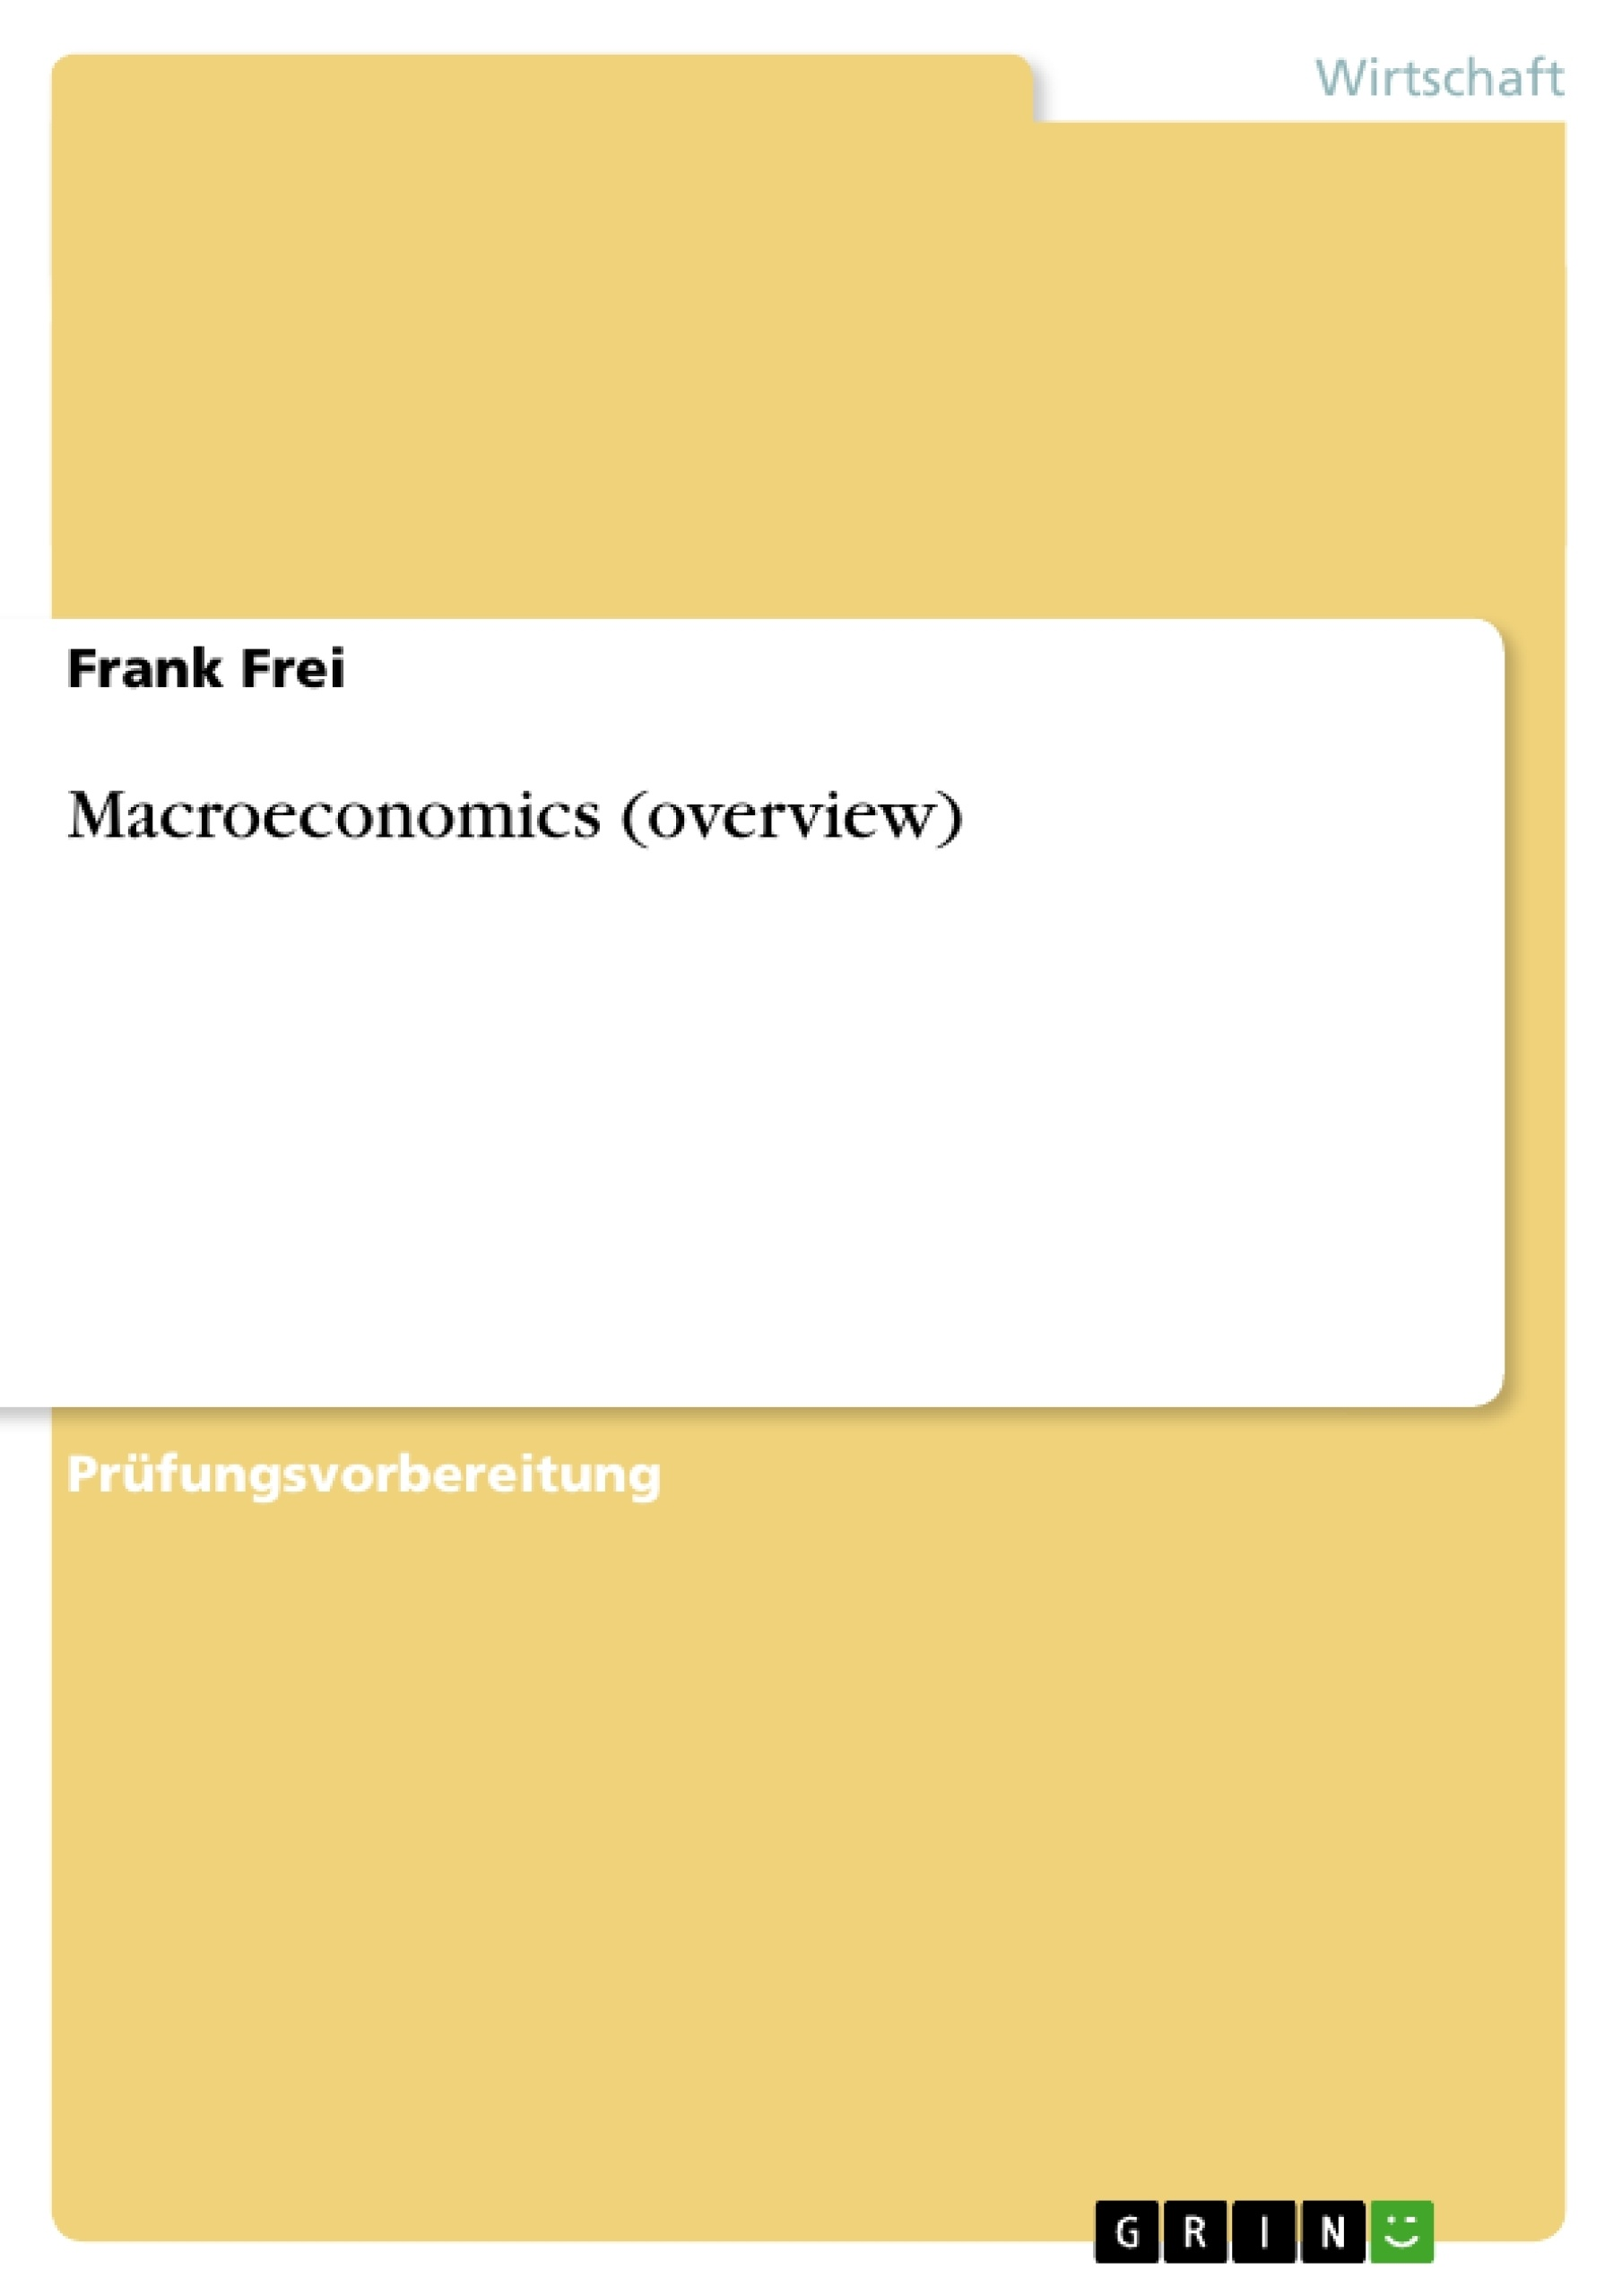 Titel: Macroeconomics (overview)